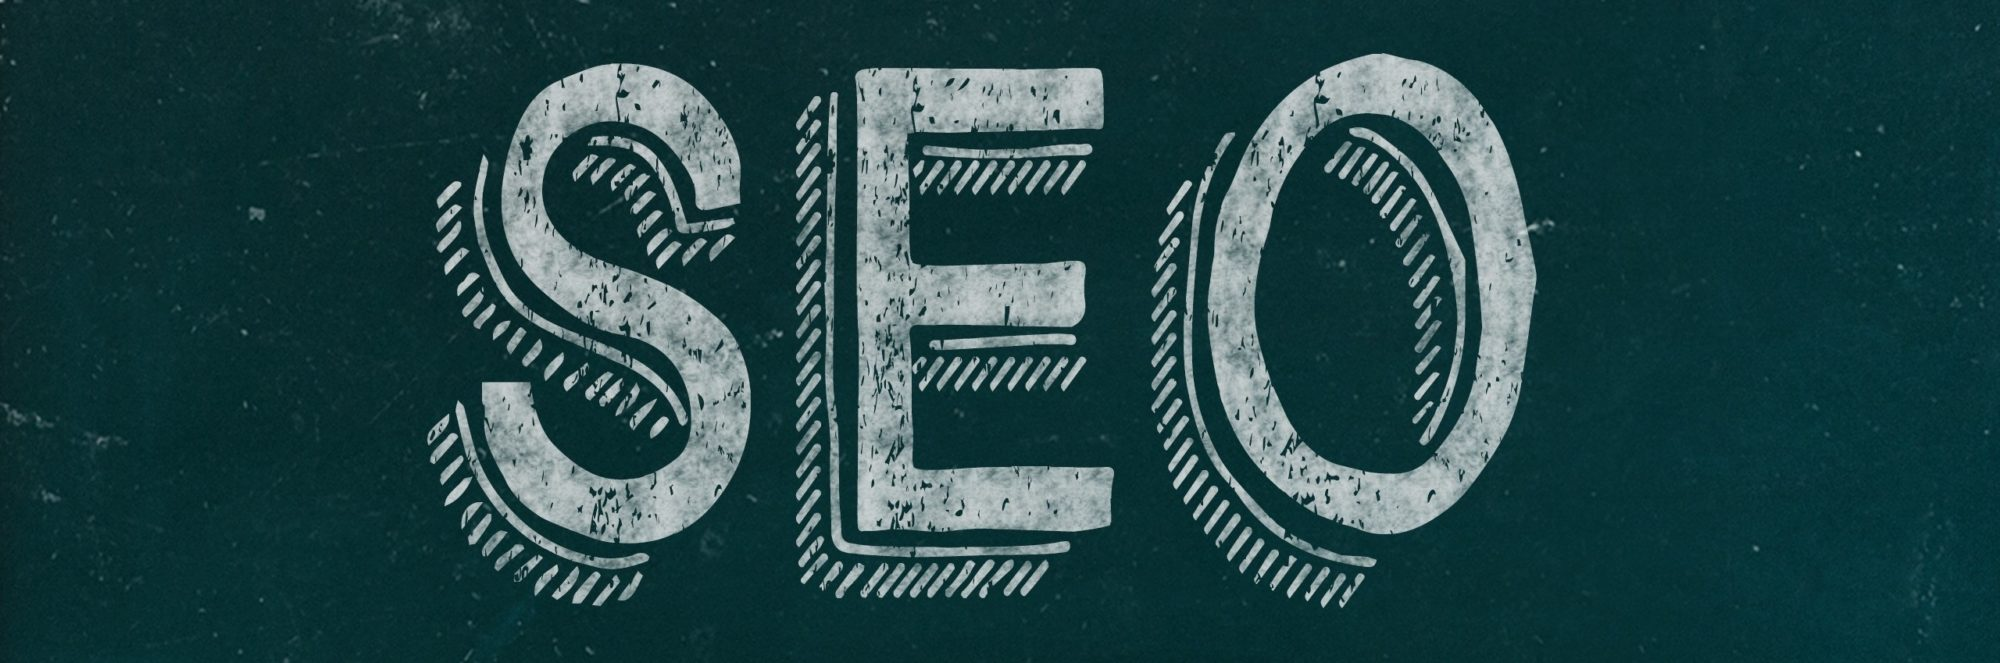 Search Engine Optimization by SearchTeamseo.com Woburn Ma 01801